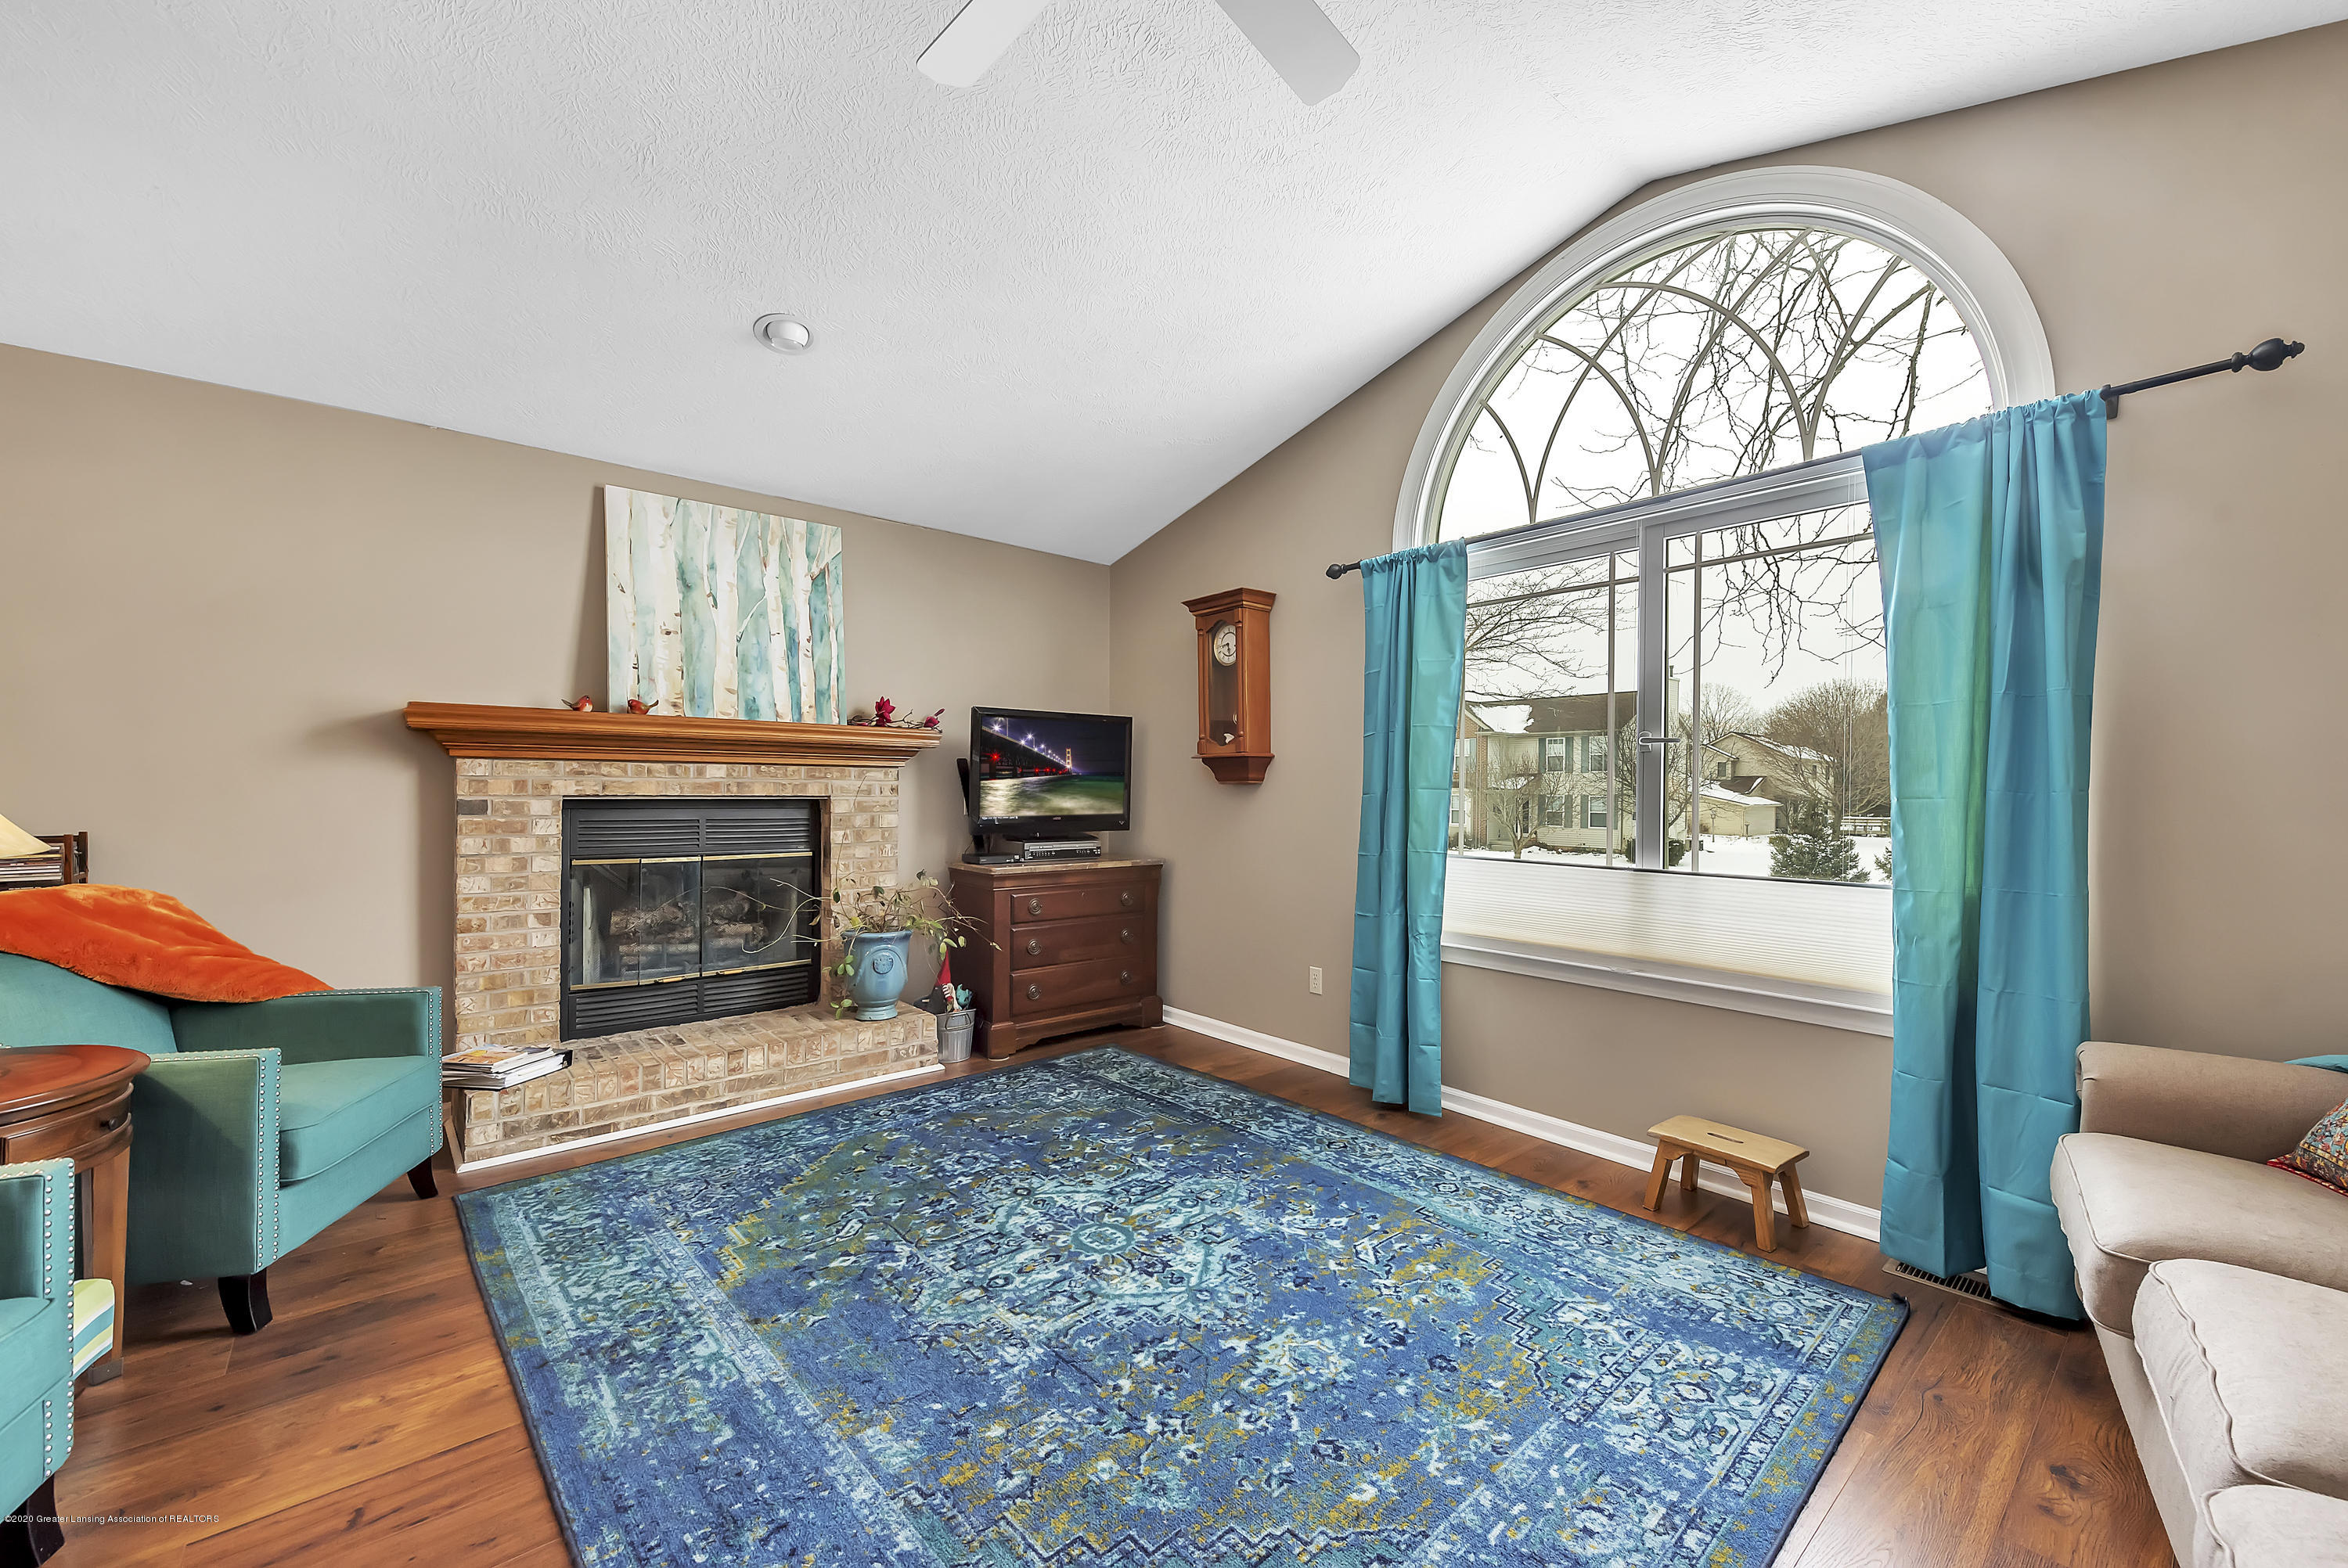 2450 Featherstone Dr - 2450-Featherstone-Dr-WindowStill-Real-Es - 7